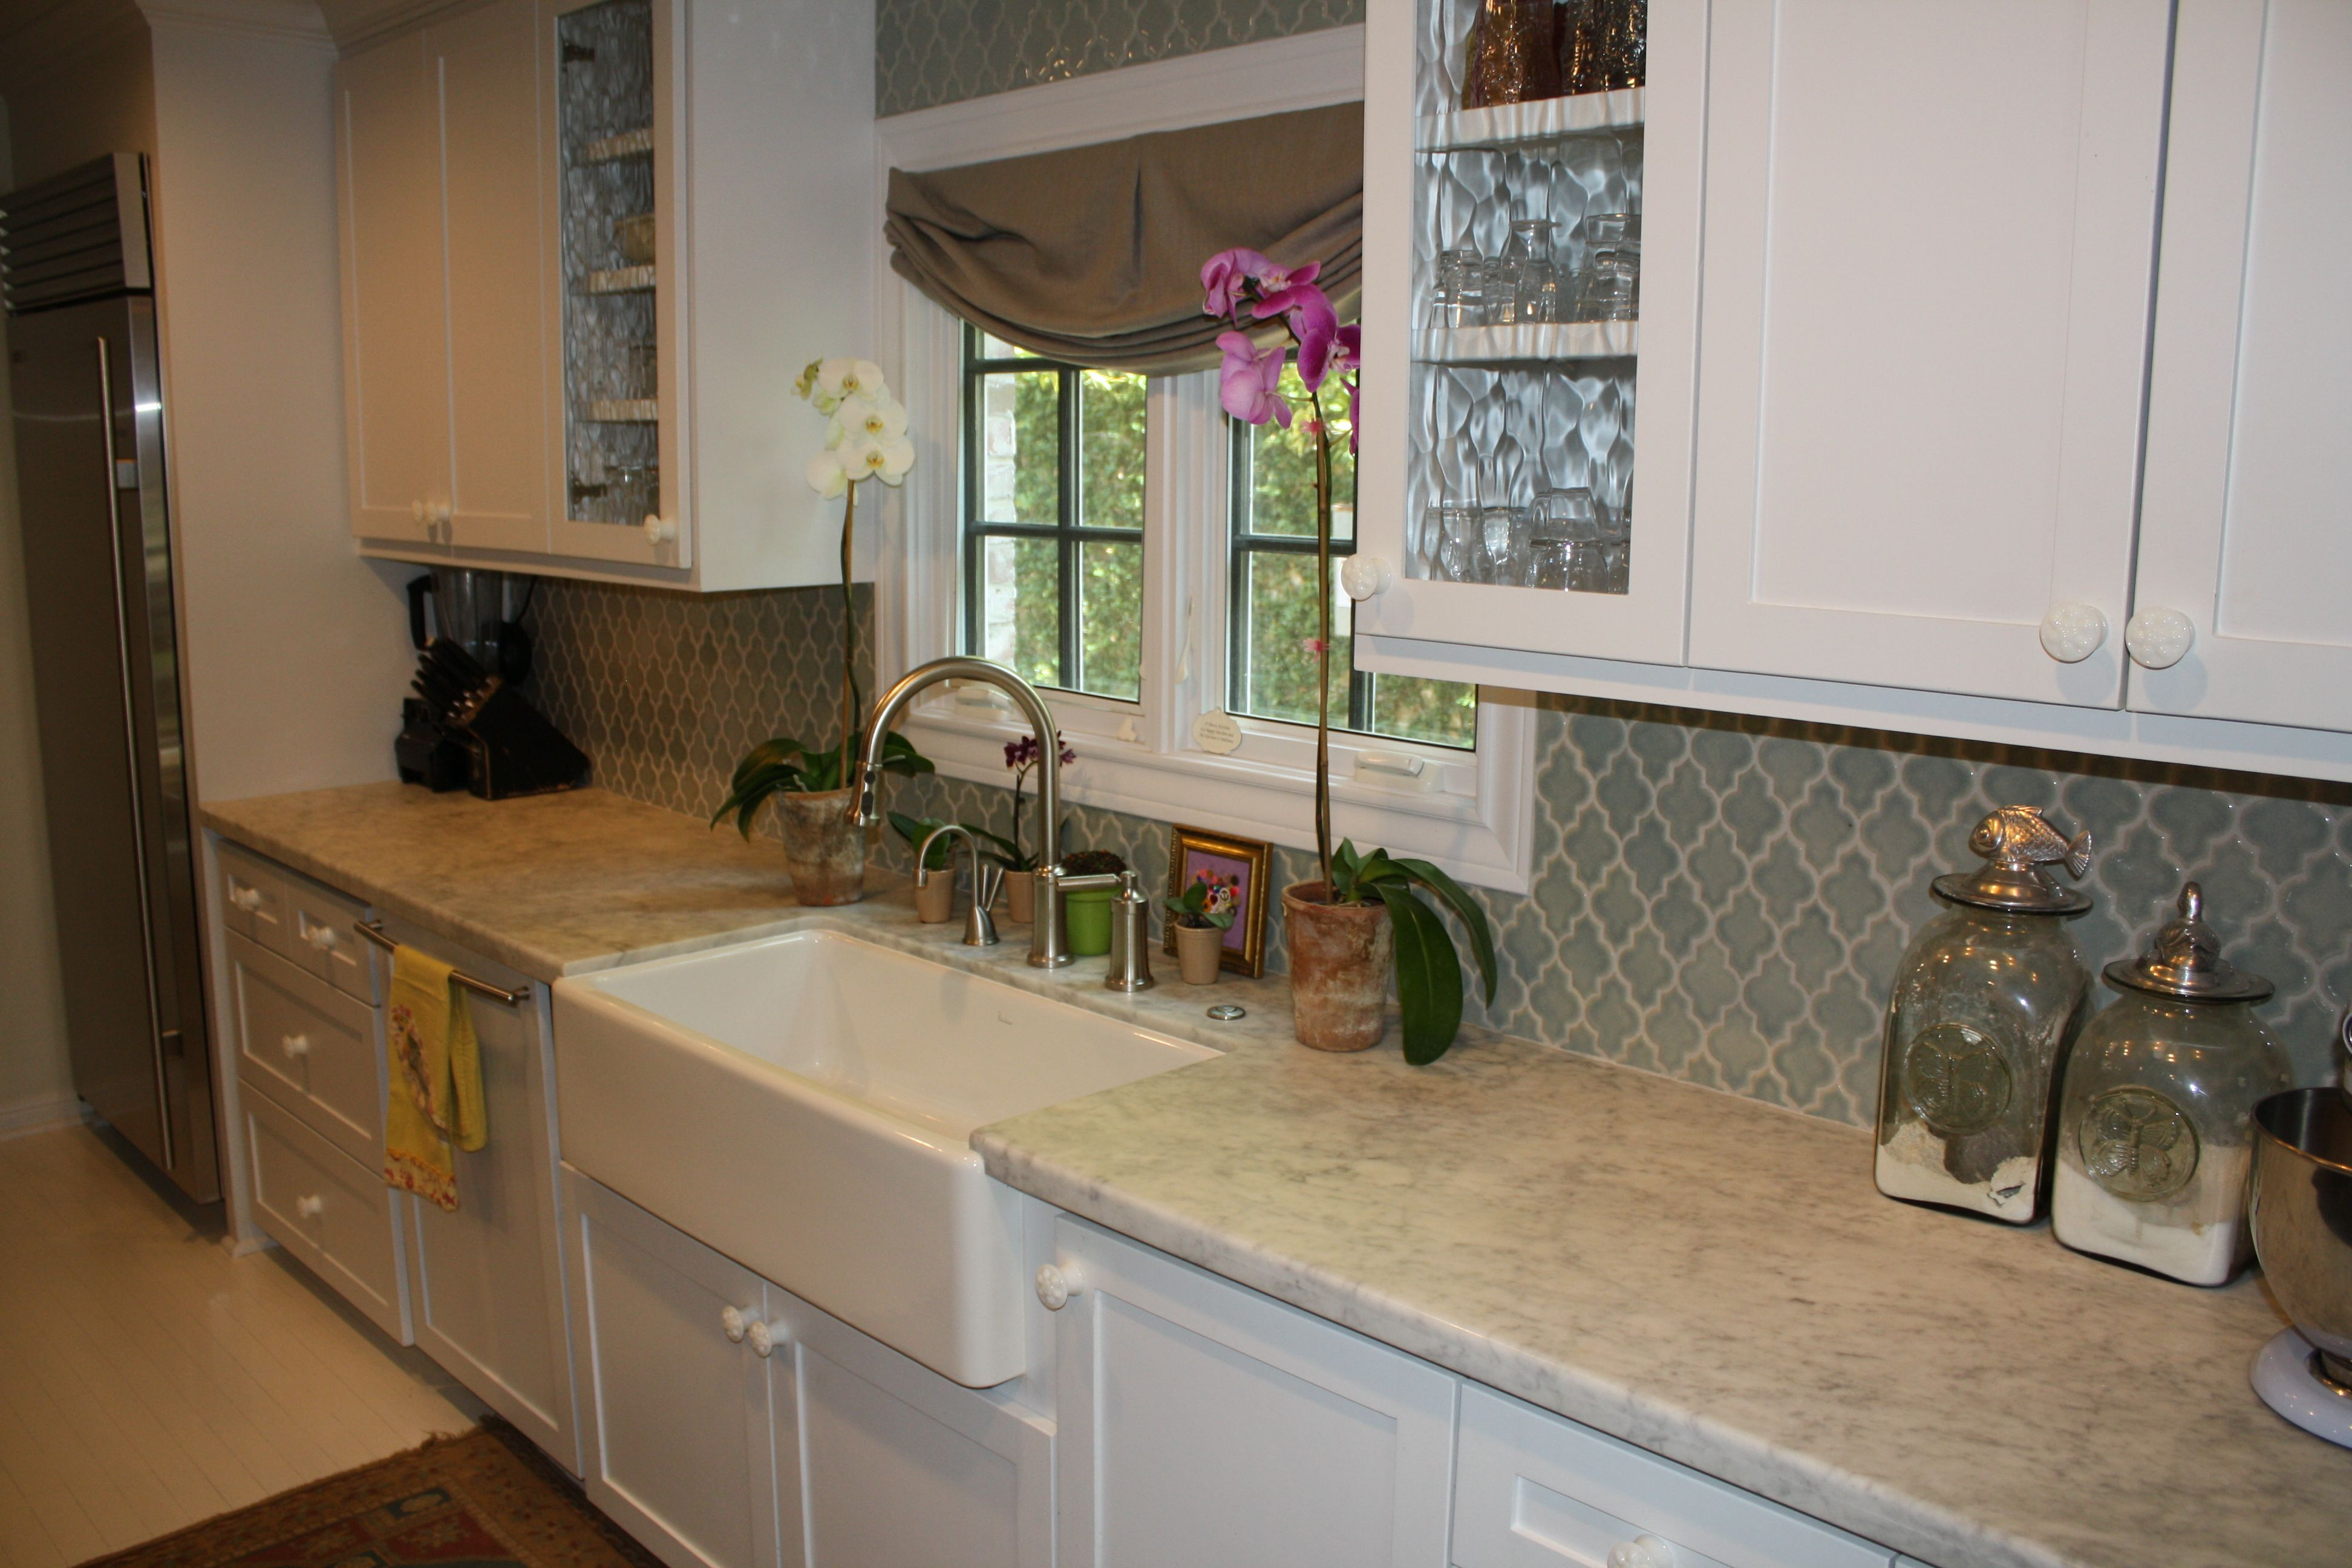 Cute country kitchen with pastel green back splash, white